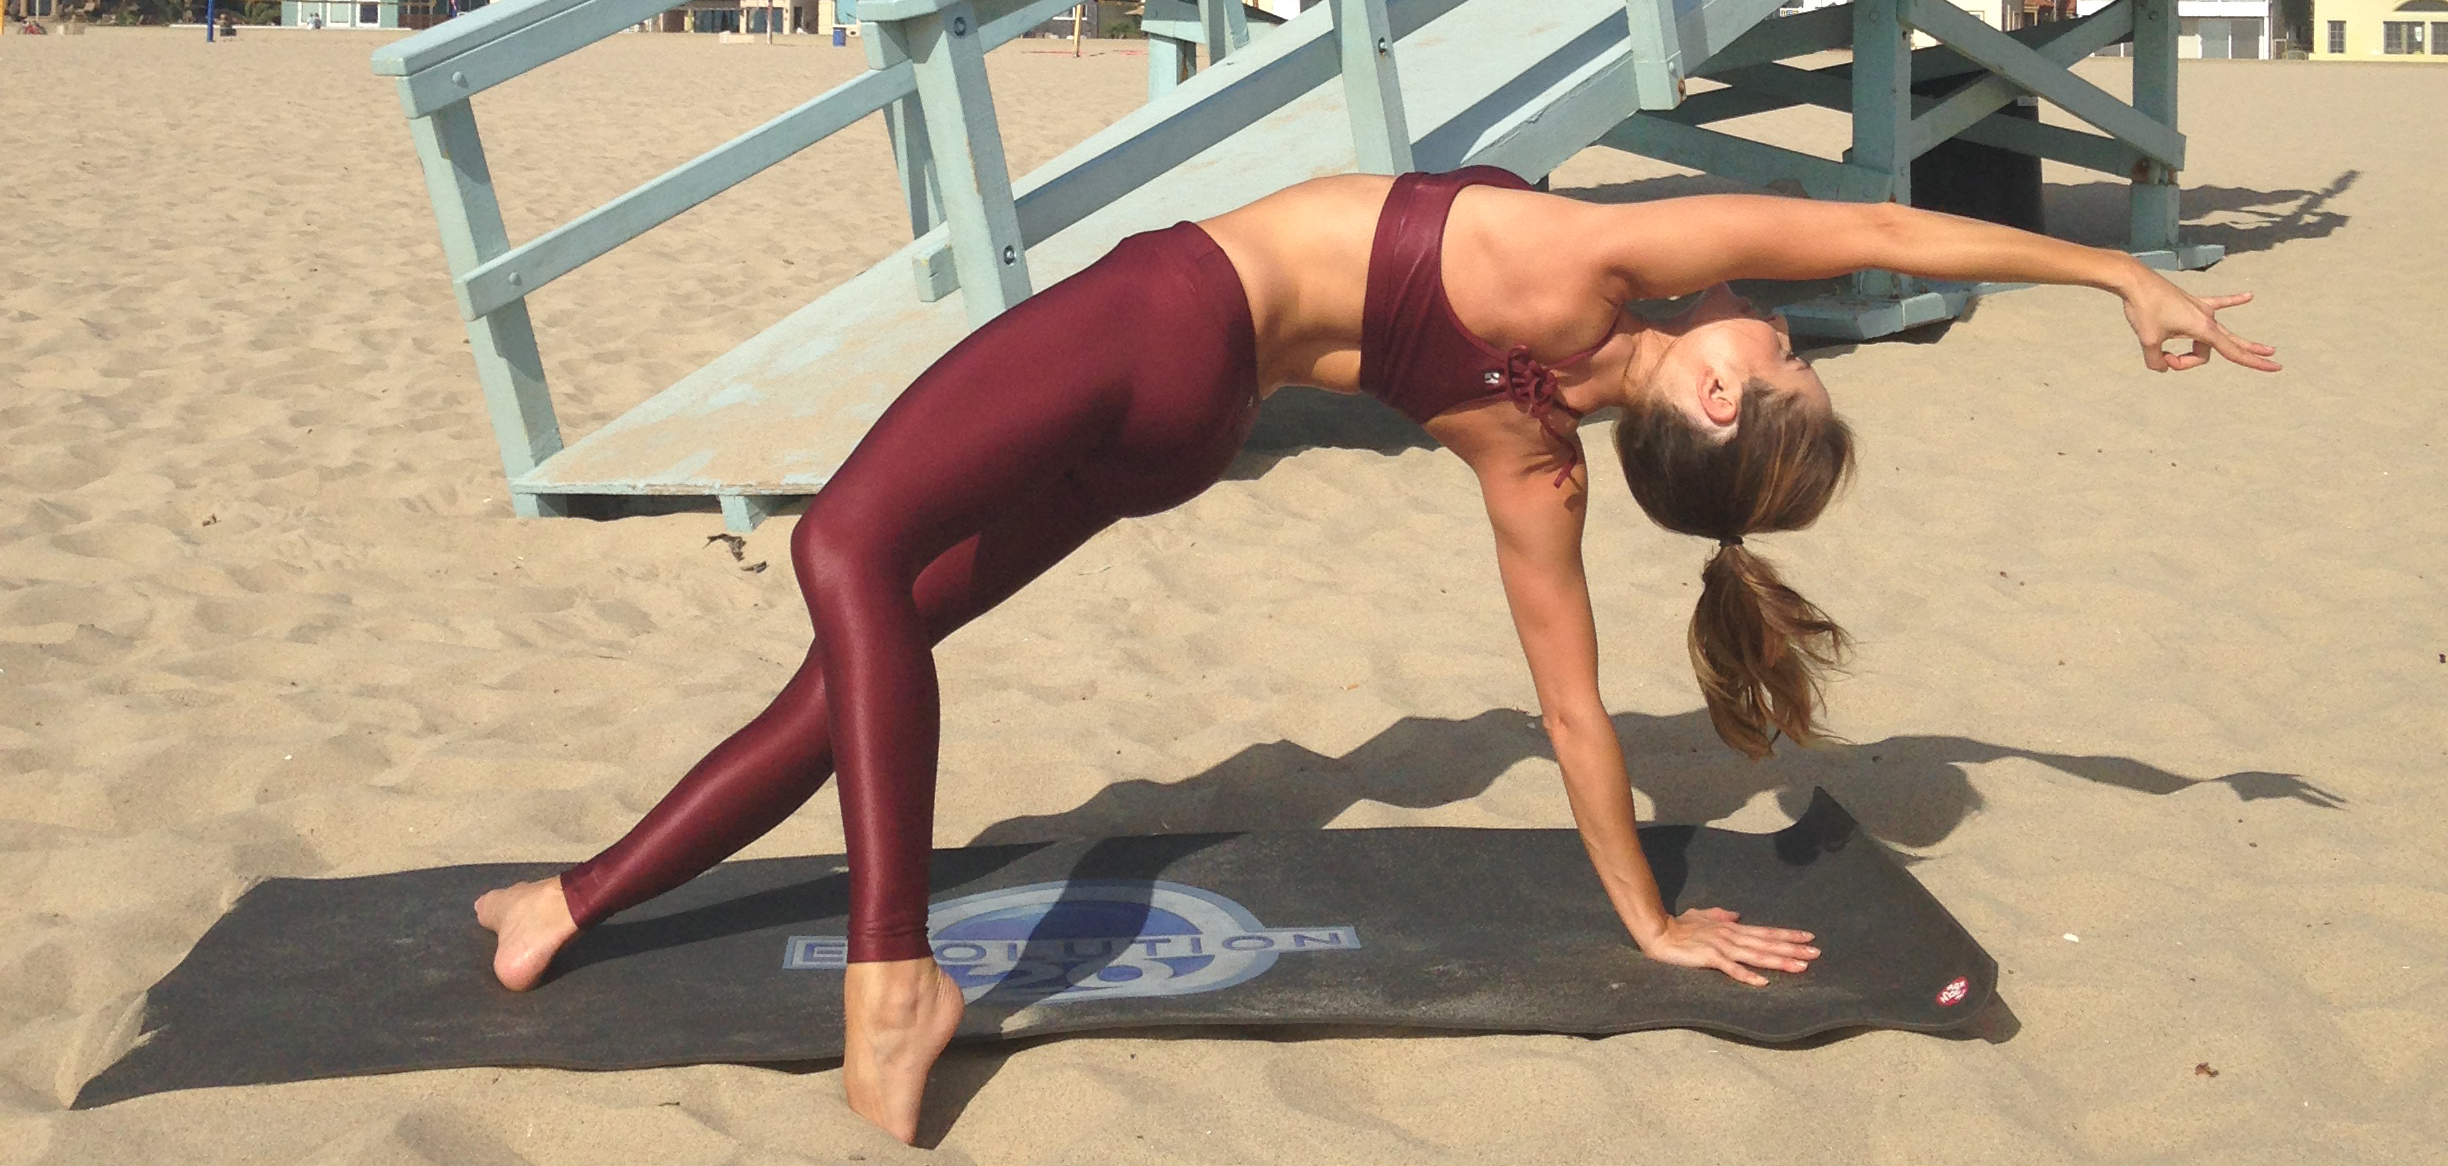 christine bullock s guide to getting the best workout and it christine bullock s guide to getting the best workout and it might surprise you theflexiblechef